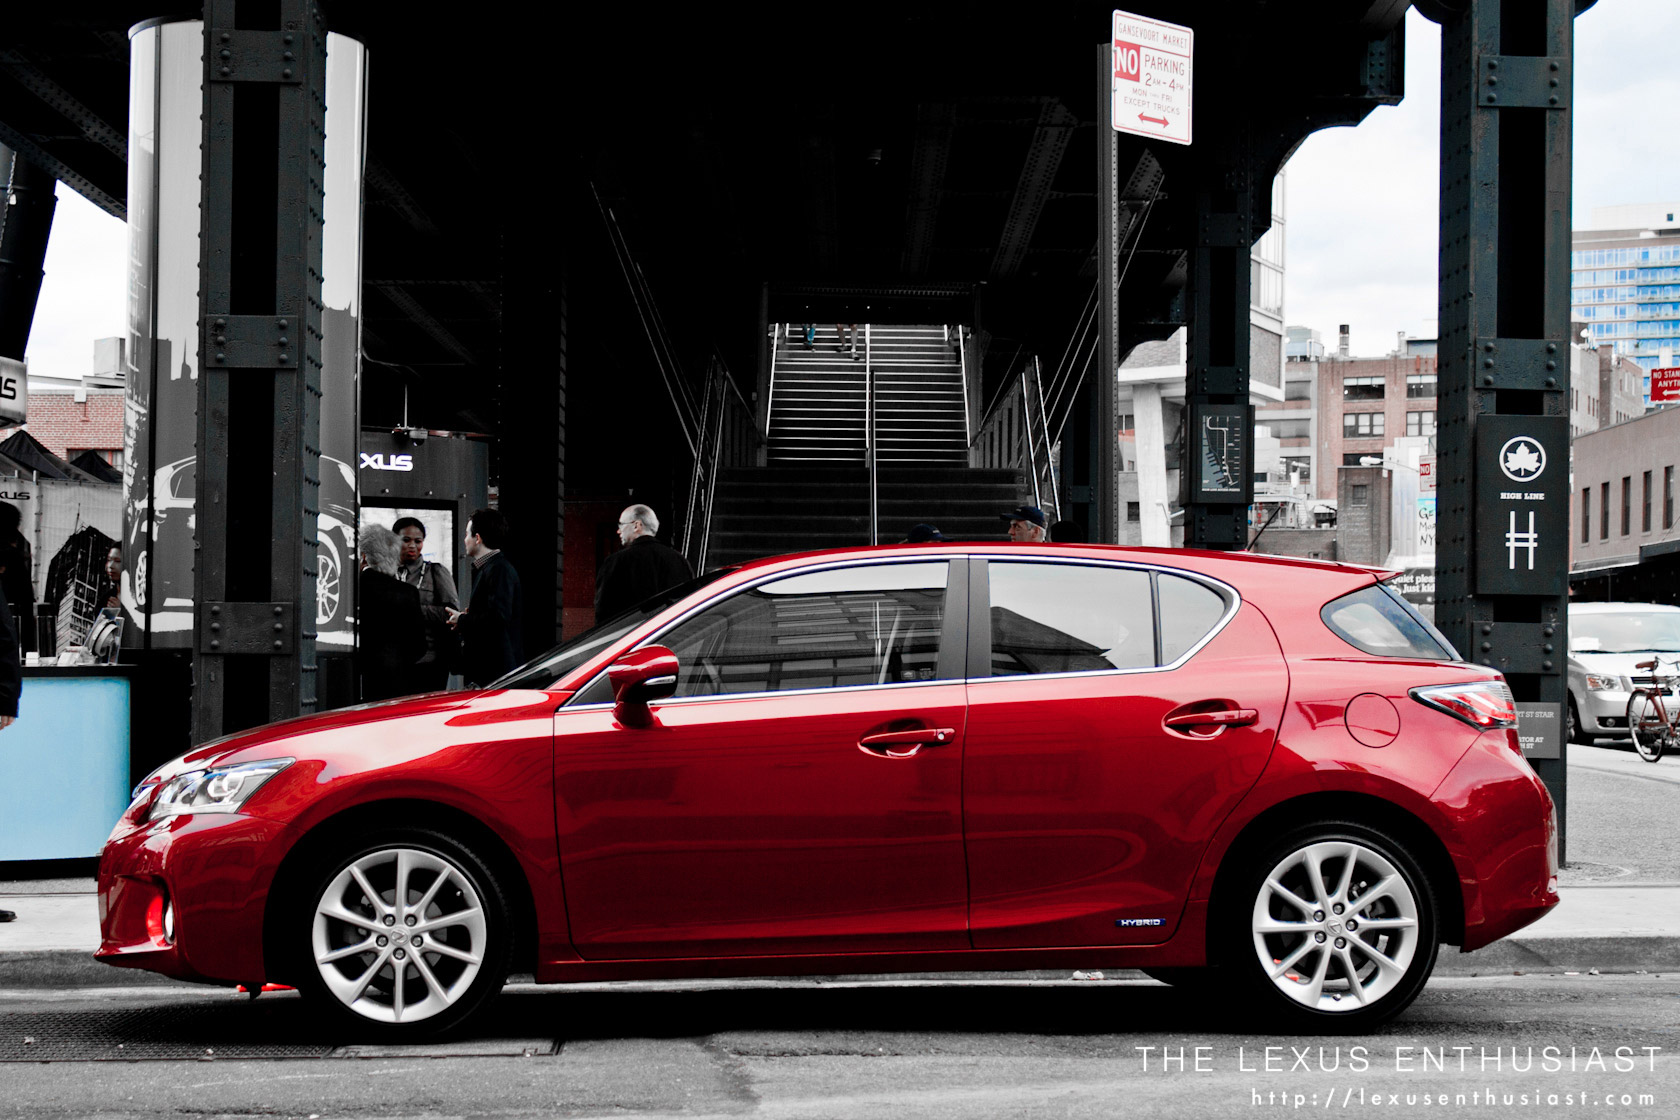 Photos From The Nyc Lexus Ct 200h Event Lexus Enthusiast